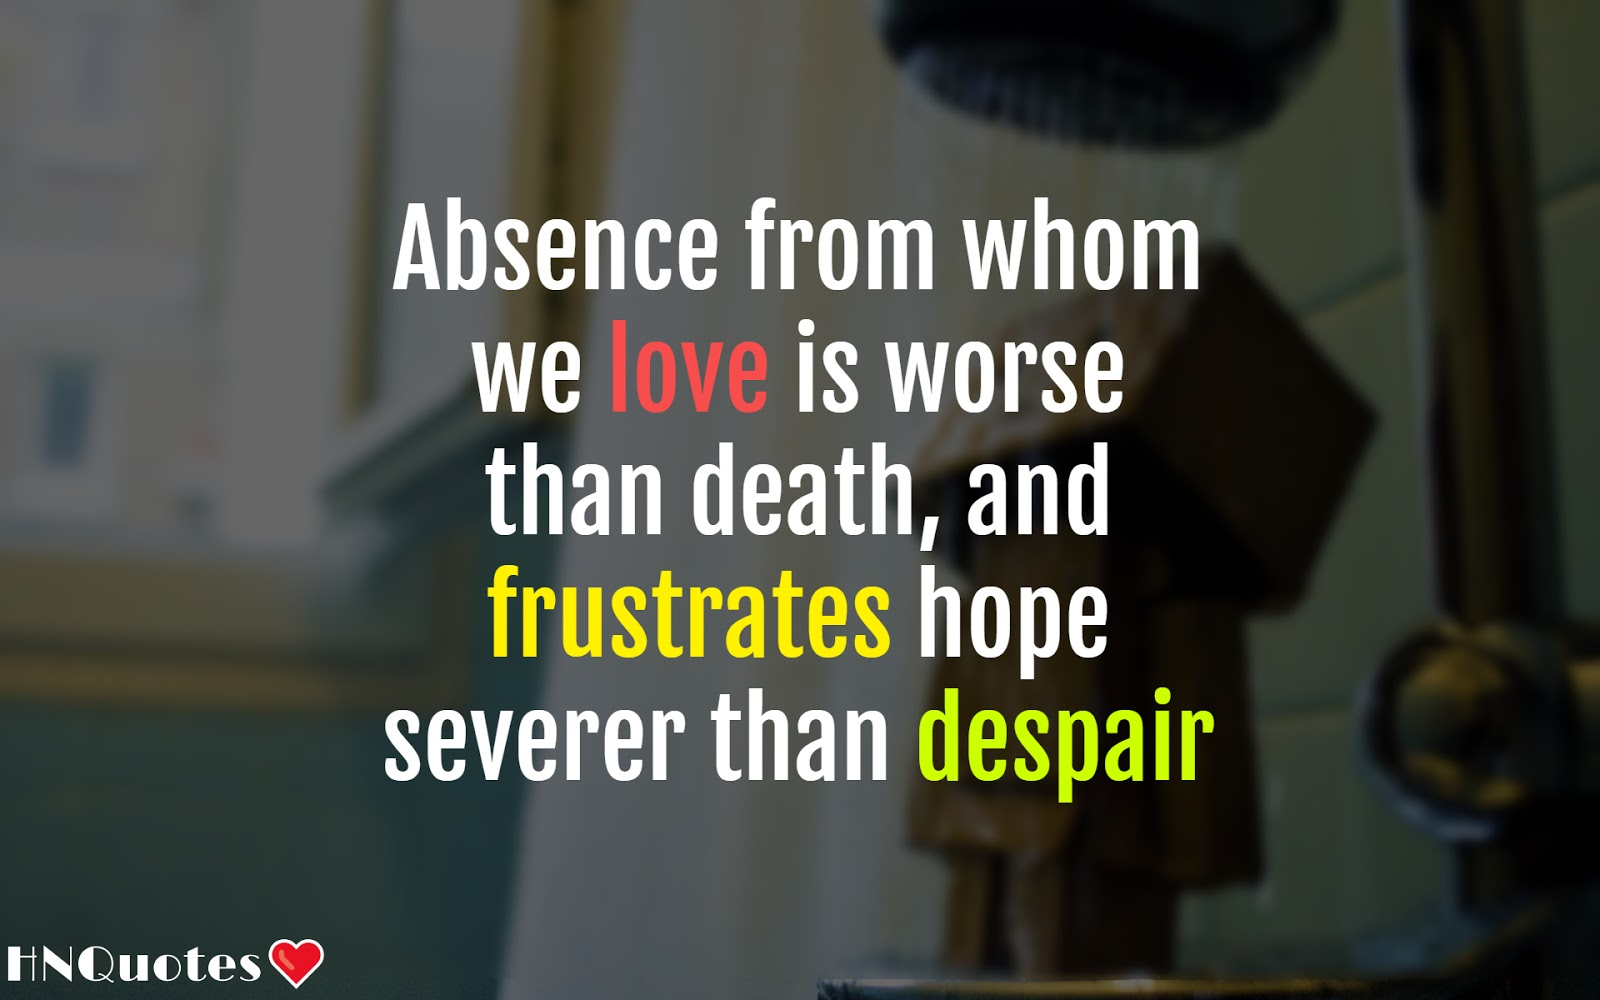 Sad-&-Emotional-Quotes-on-Life-67-Best-Emotional-Quotes[HNQuotes]